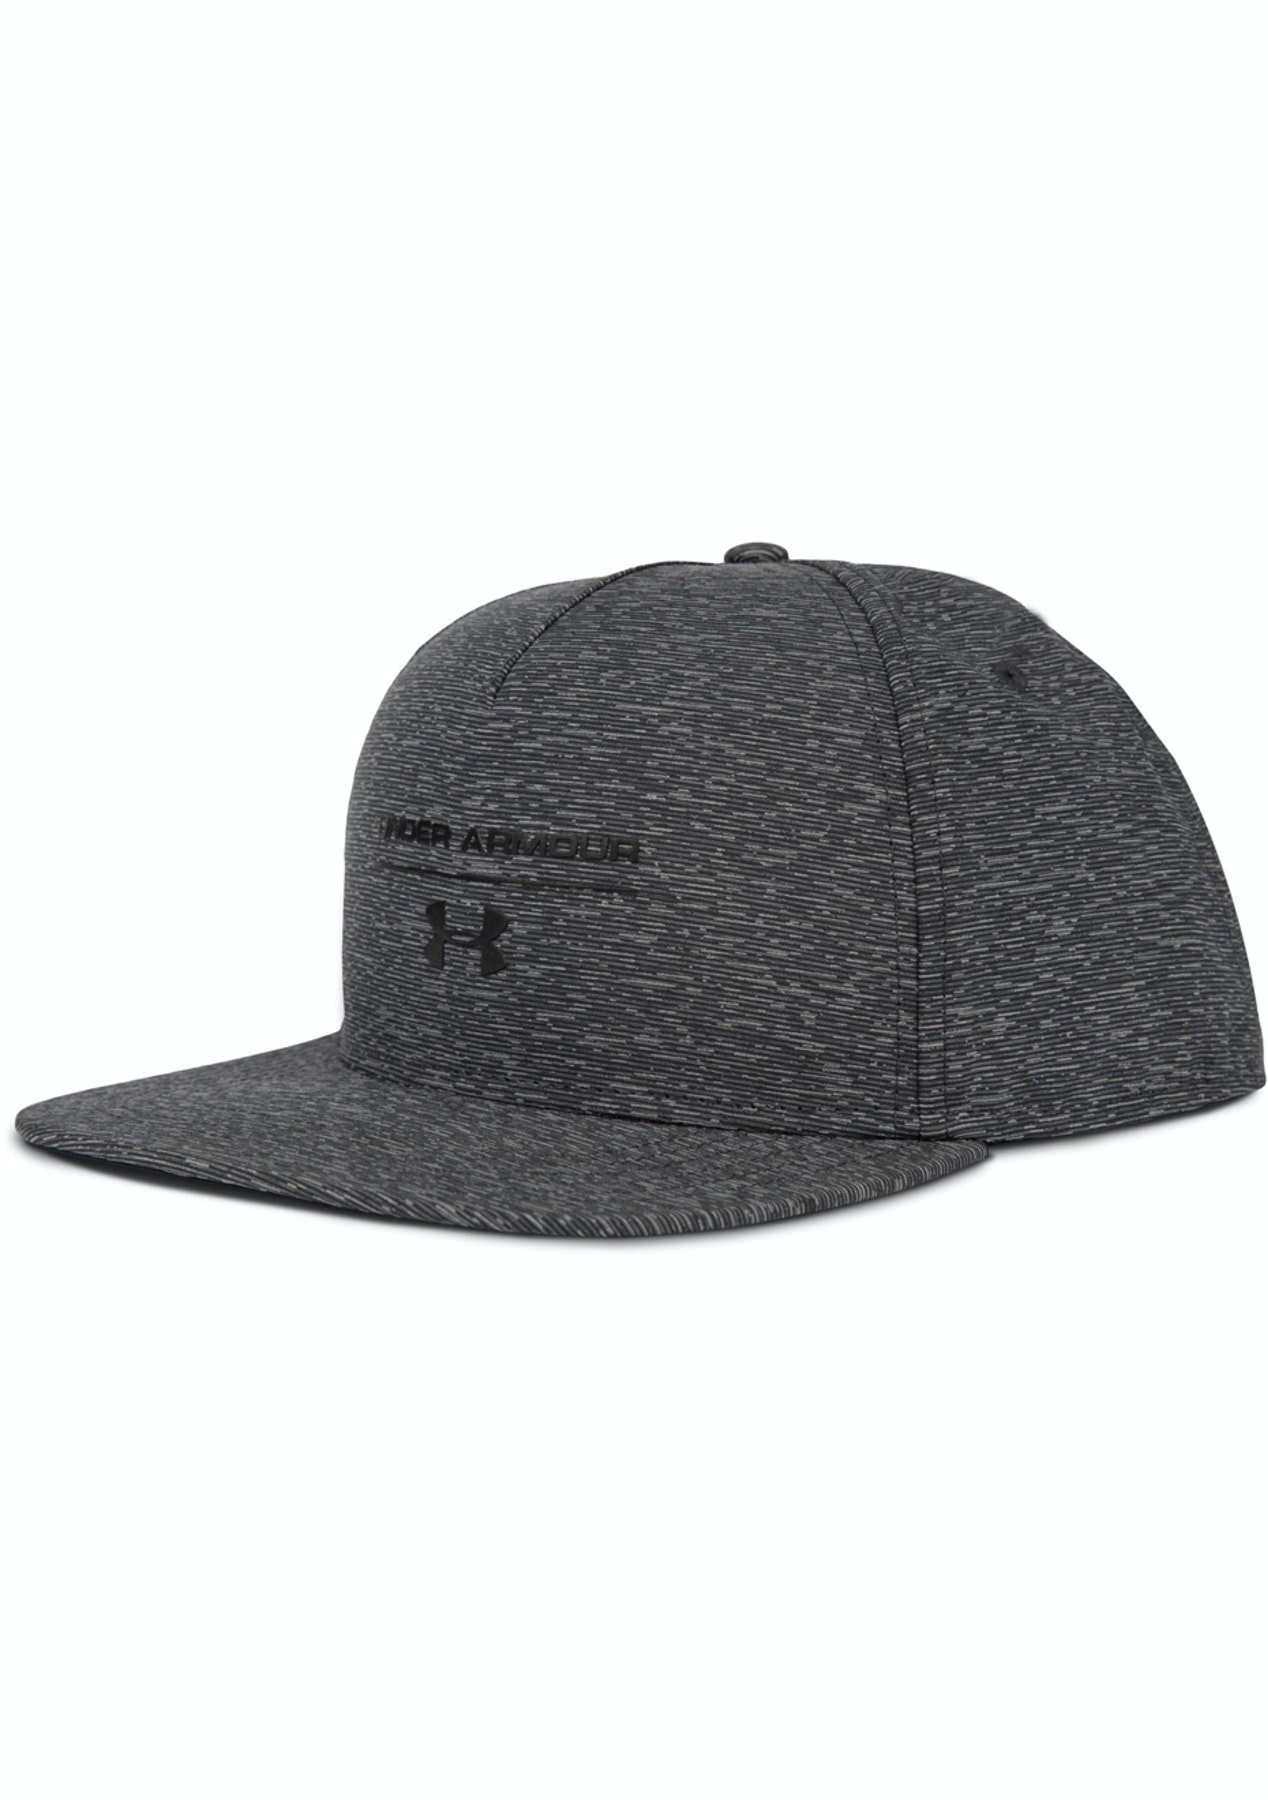 b54647eef Under Armour - 1306299 Womens Graphic Snapback Cap - Teal